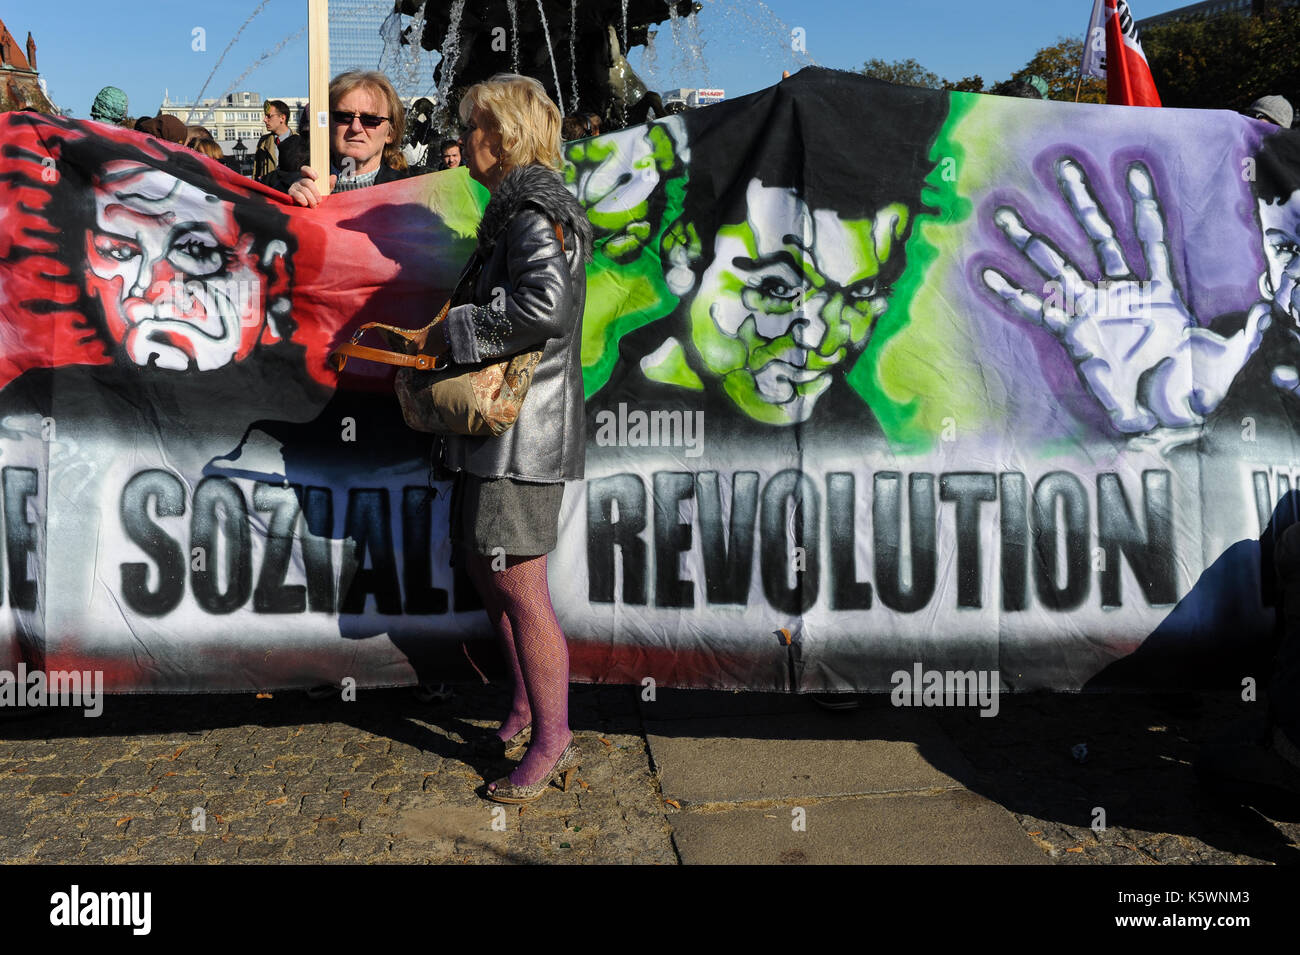 15.10.2011, Berlin, Germany, Europe - Participants at the worldwide protest day against the capitalist crisis in front of the town hall Rotes Rathaus  - Stock Image